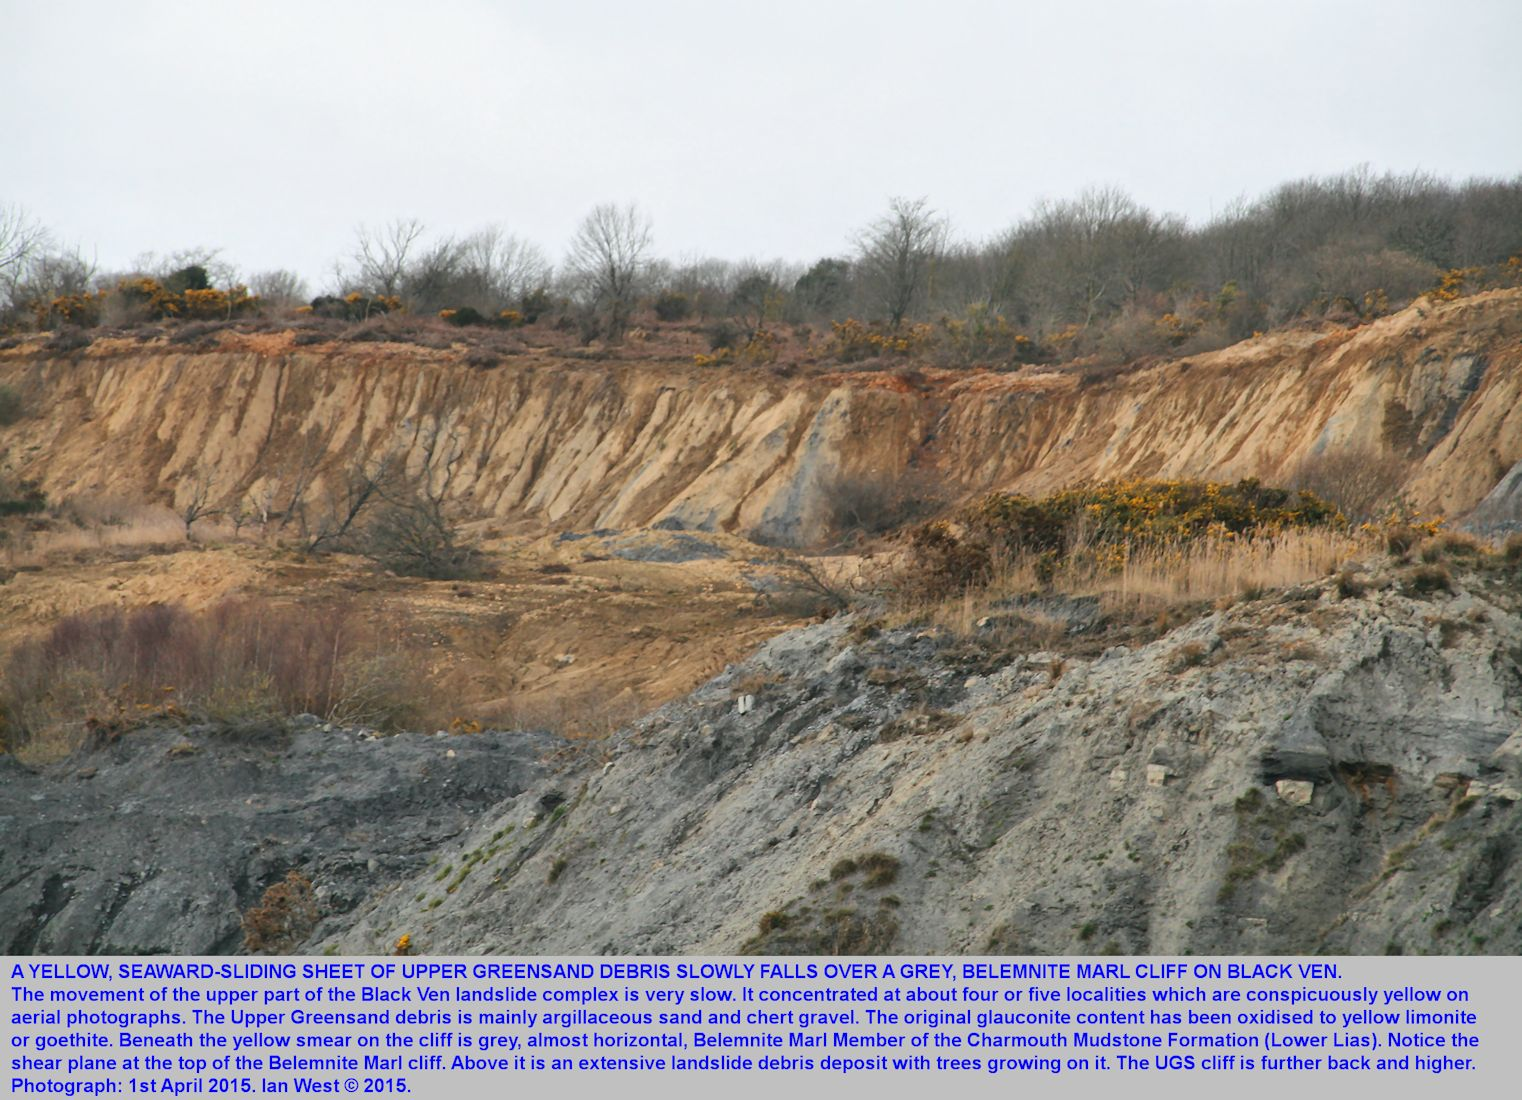 Details of a yellow debris fall of weathered Upper Greensand material over a cliff of Belemnite Marl Member, the Black Ven landslide complex, between Lyme Regis and Charmouth, Dorset, as seen on 1st April 2015